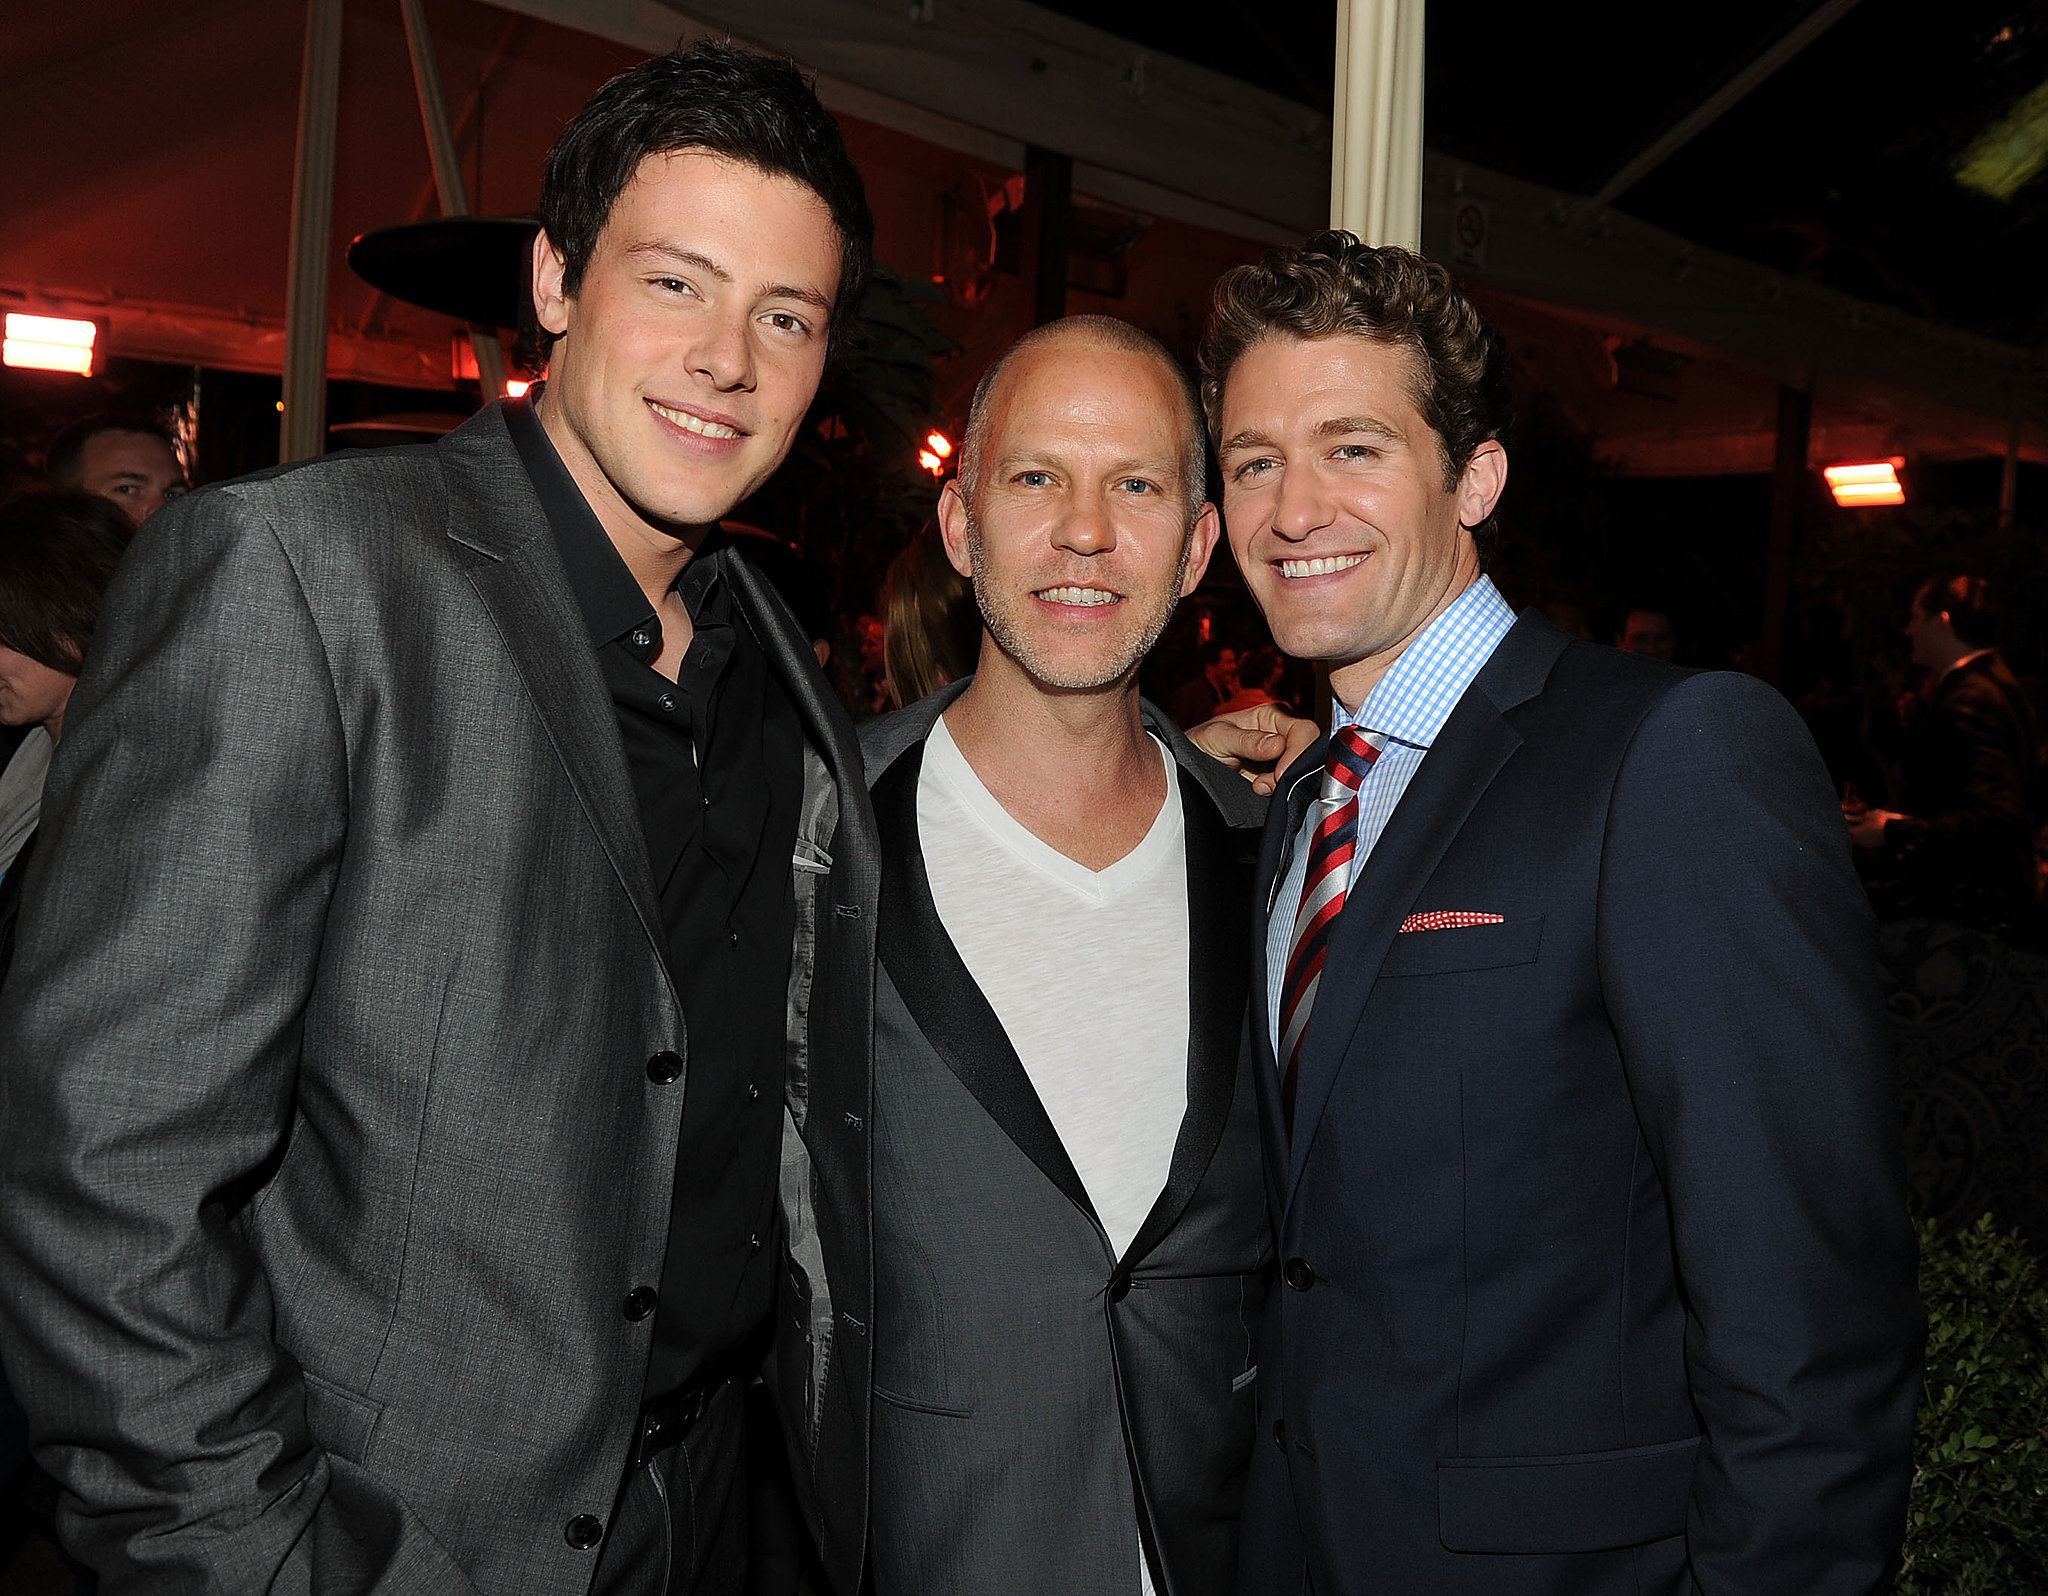 Cory Monteith met up with Ryan Murphy and Matthew Morrison at the Glee Spring soiree in LA in April 2010.